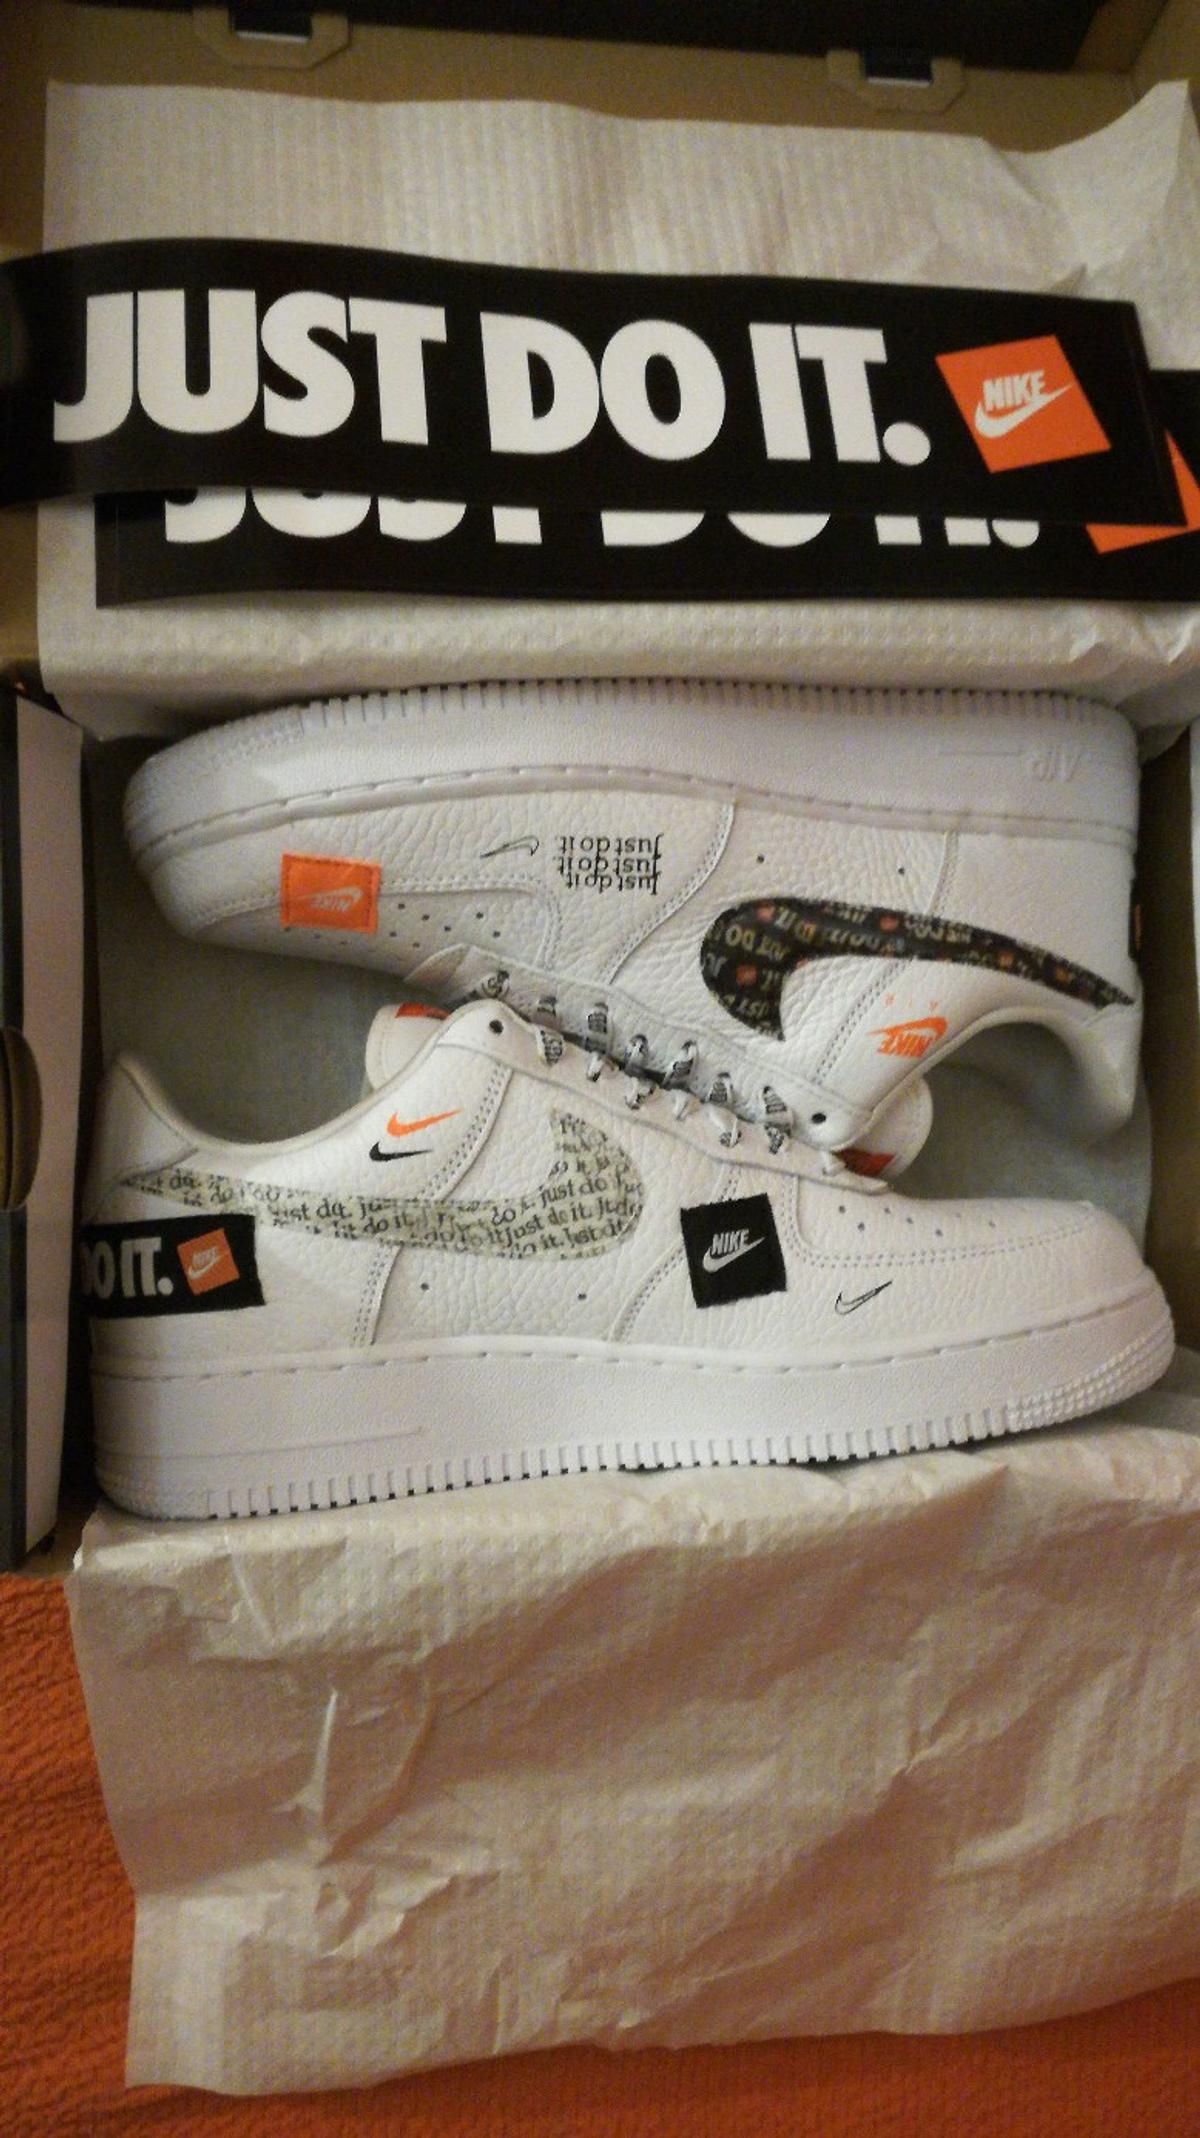 Nike Air Force 1 Just Do It 41 42 sneakers in 10141 Torino